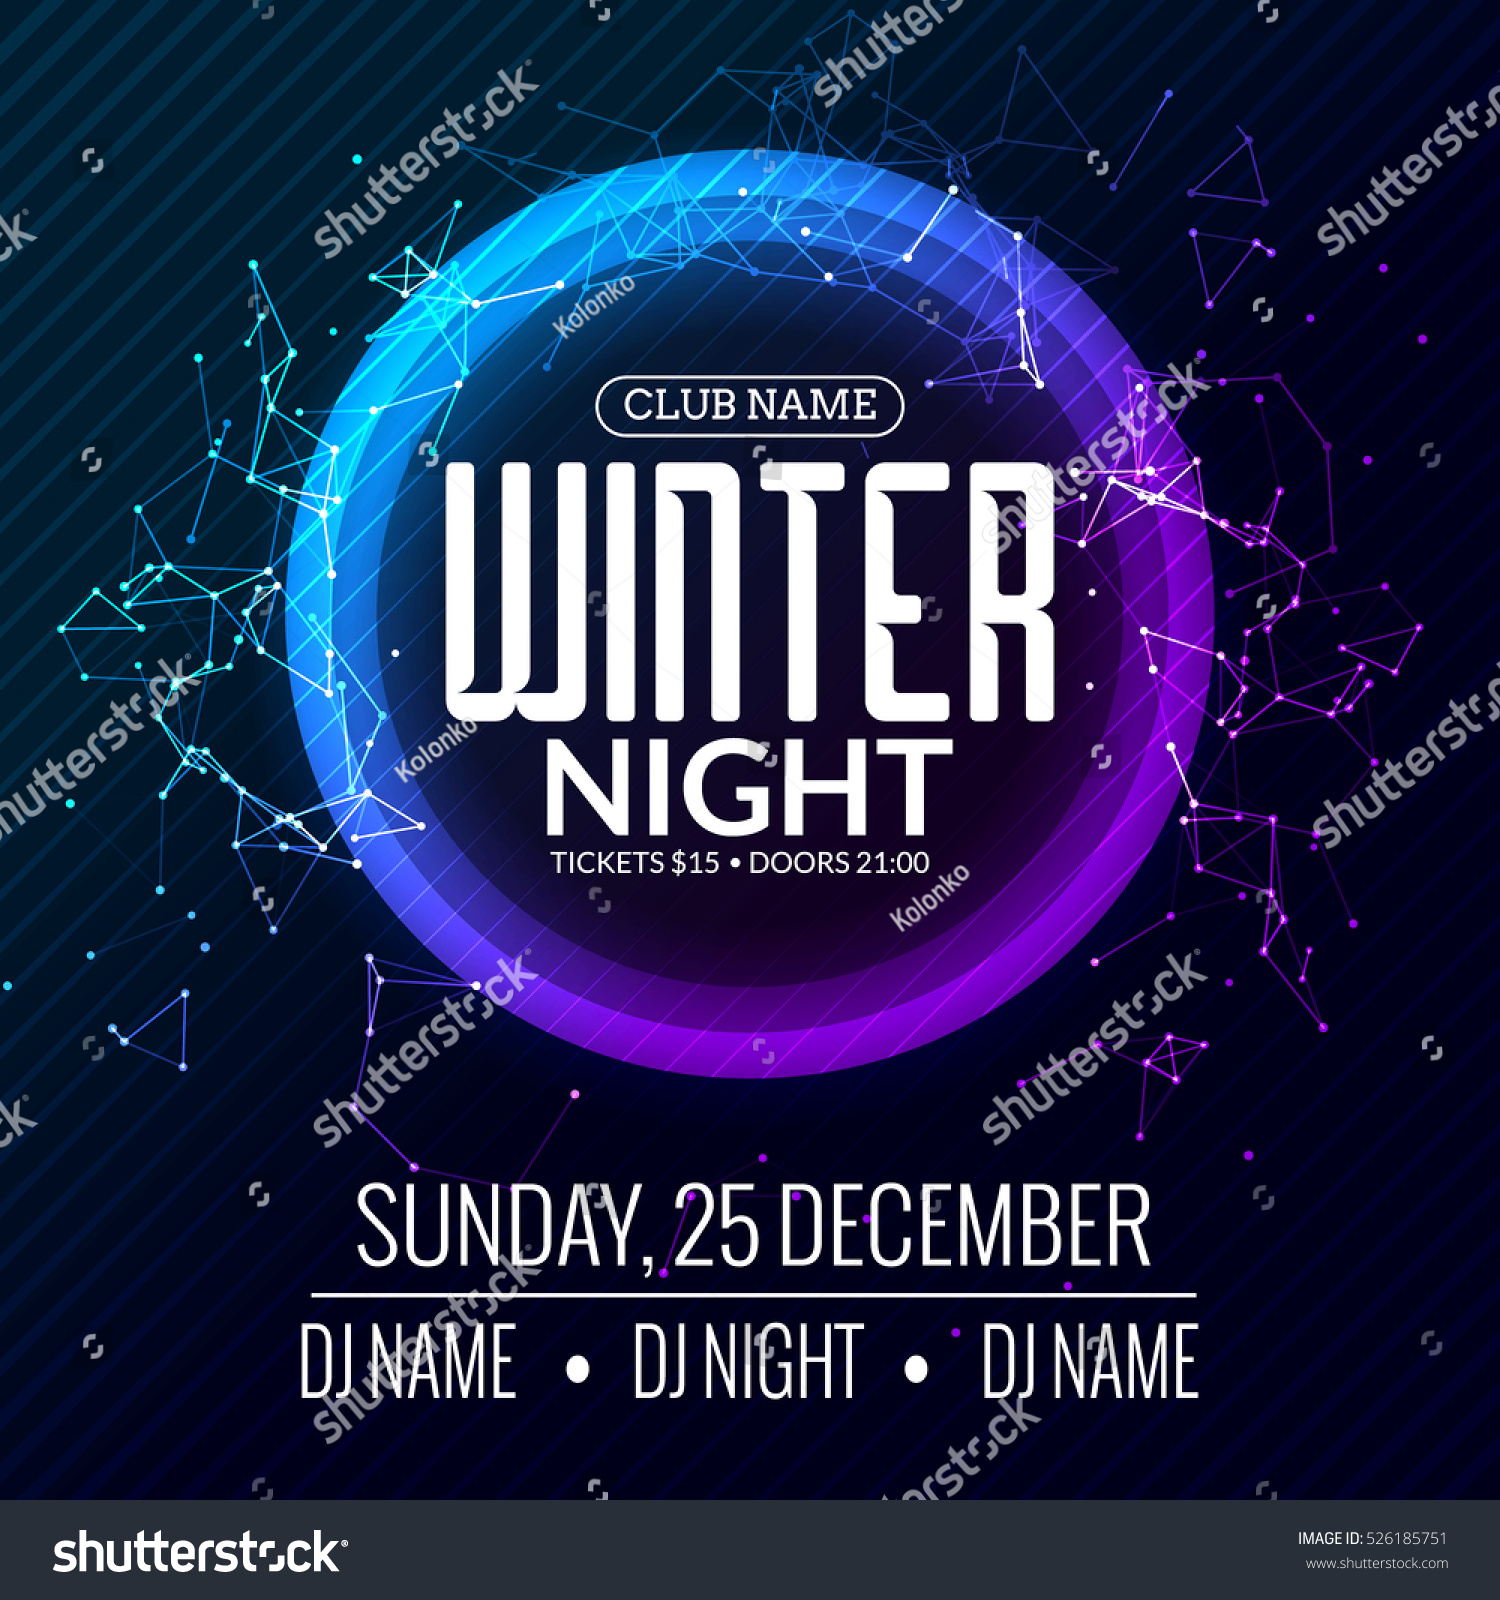 Poster design for technical events - Dance Party Dj Battle Poster Design Winter Disco Party Music Event Flyer Or